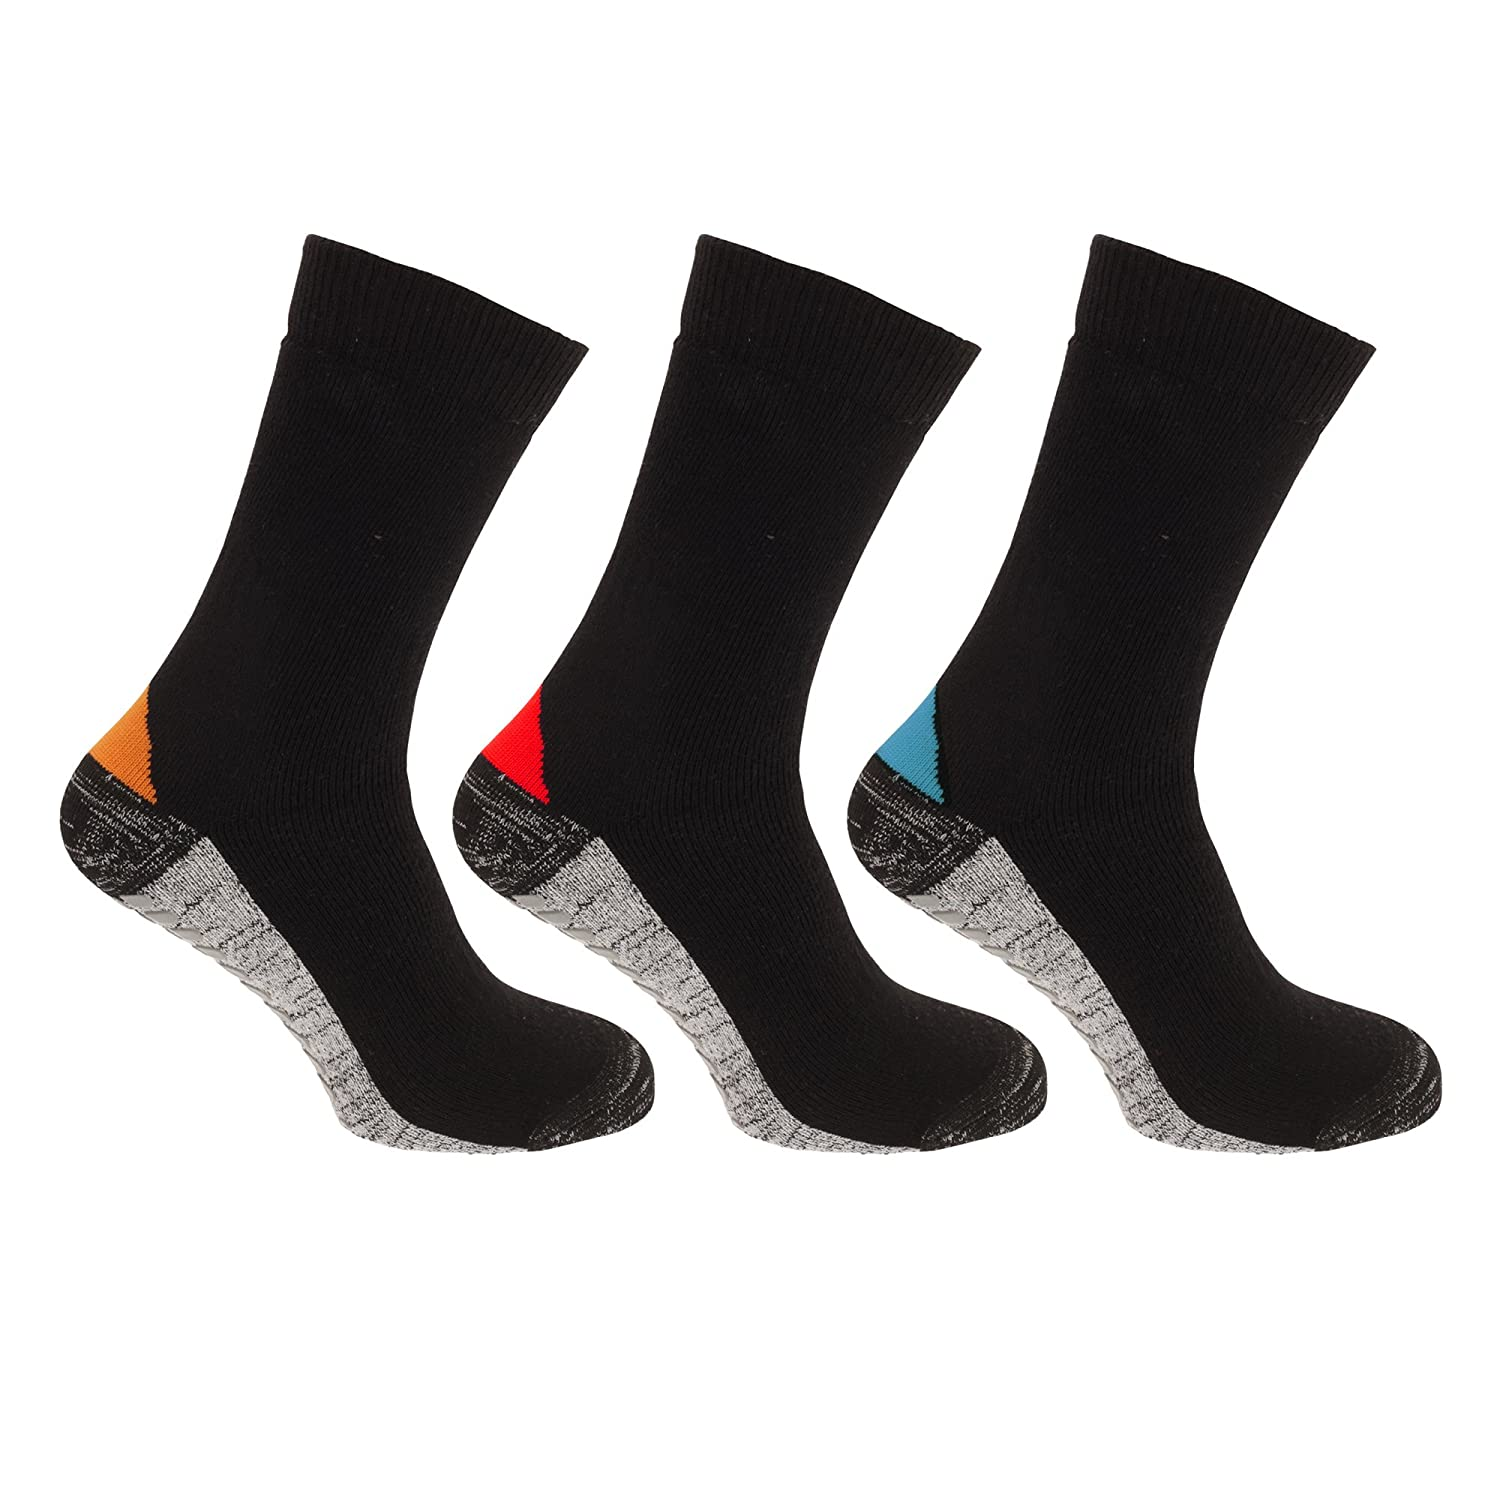 Mens Self-Heating Work Socks With Tourmaline Mineral Sole (Pack Of 3)